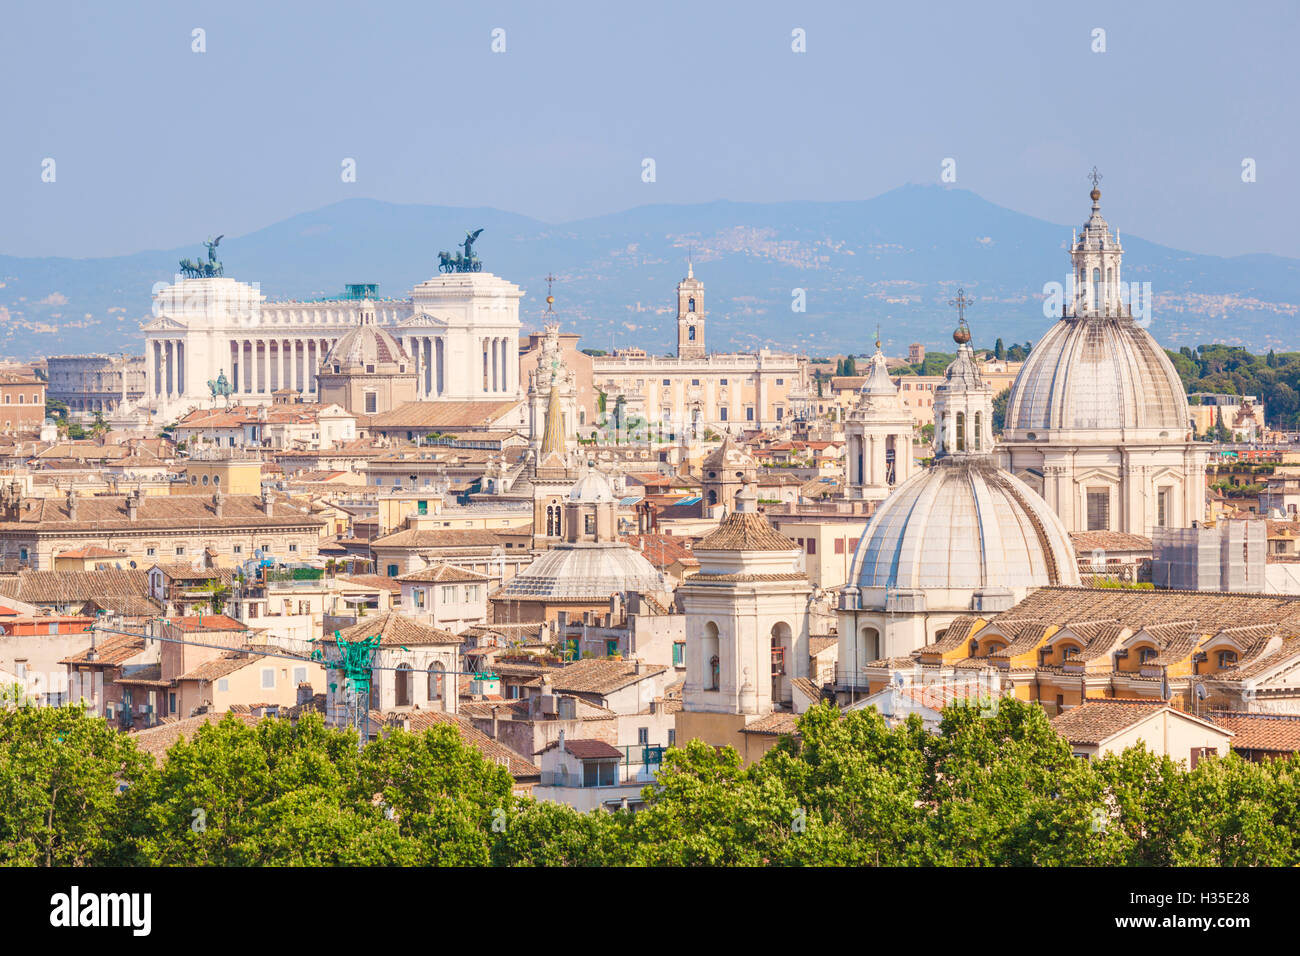 Churches and domes of the Rome skyline showing Victor Emmanuel II monument in the distance, Rome, Lazio, Italy - Stock Image